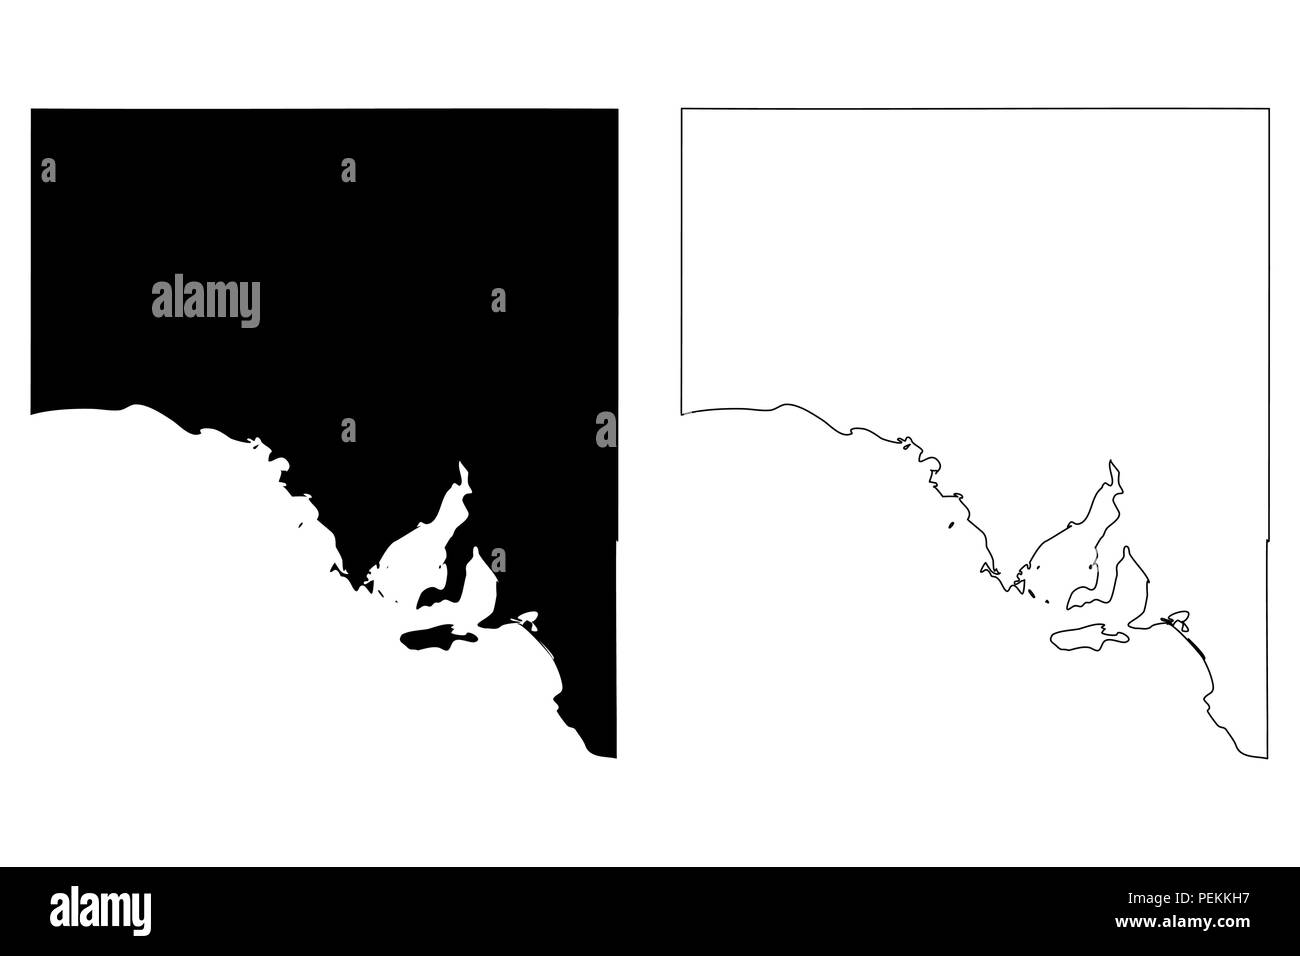 Australia Map States And Territories.South Australia Australian States And Territories Sa Map Vector